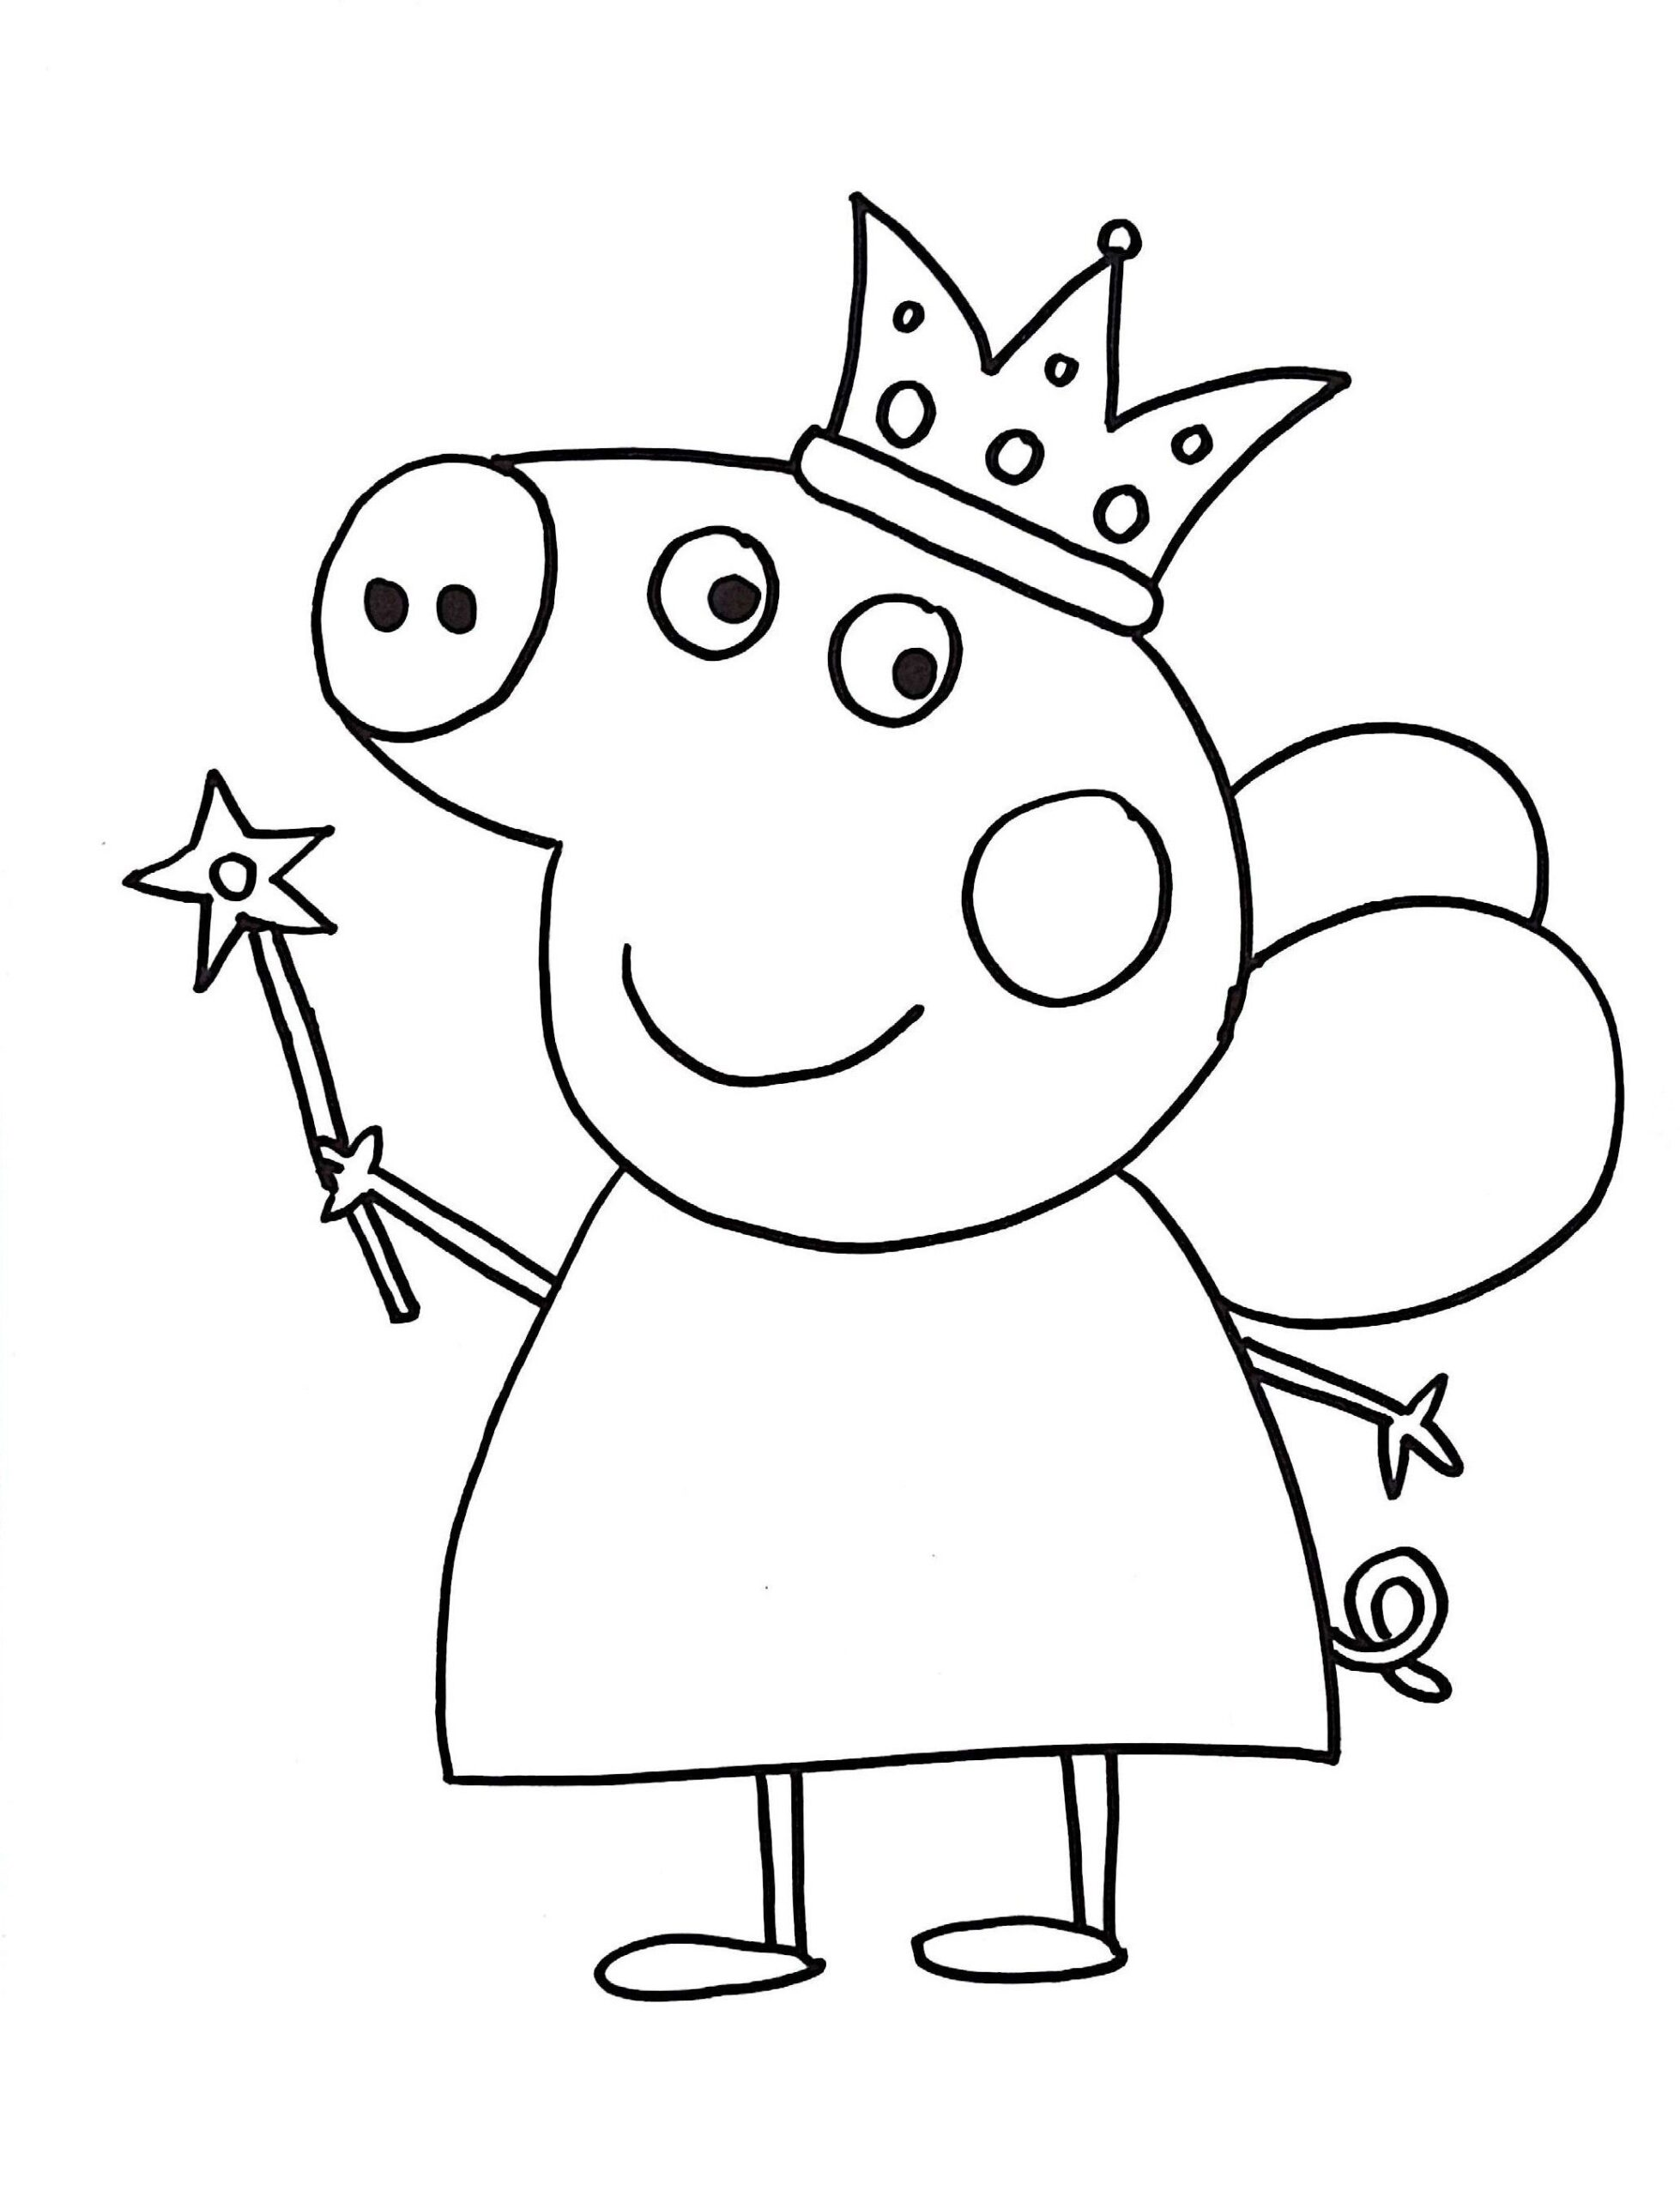 peppa pig coloring for girls zaasoo d744uqua8z crayola glitter dots leaf man lesson plan coloring pages Pig Coloring Page